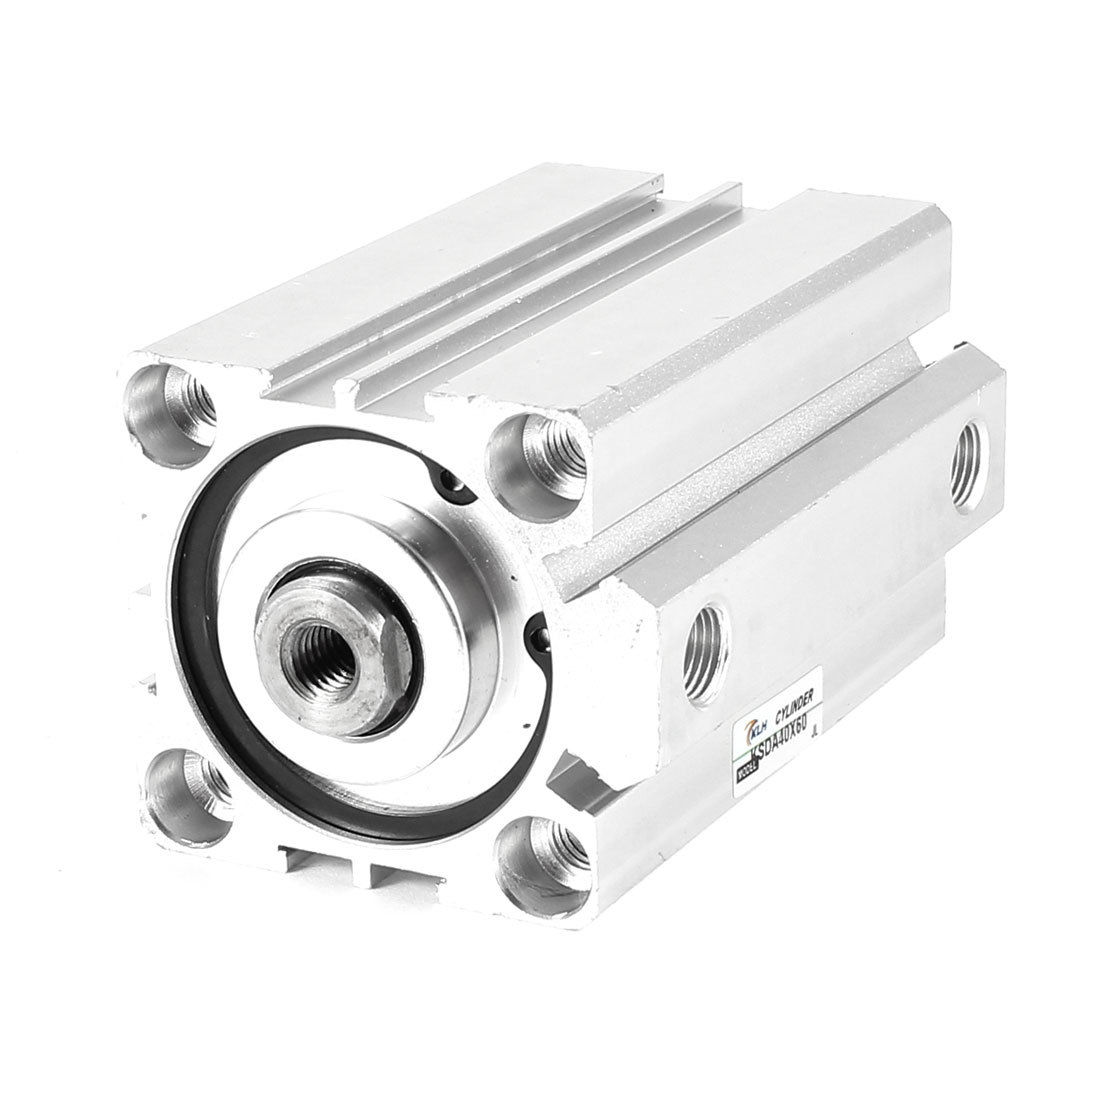 1 Pcs 63mm Bore 25mm Stroke Stainless steel Pneumatic Air Cylinder SDA63-25 1 pcs 50mm bore 25mm stroke stainless steel pneumatic air cylinder sda50 25